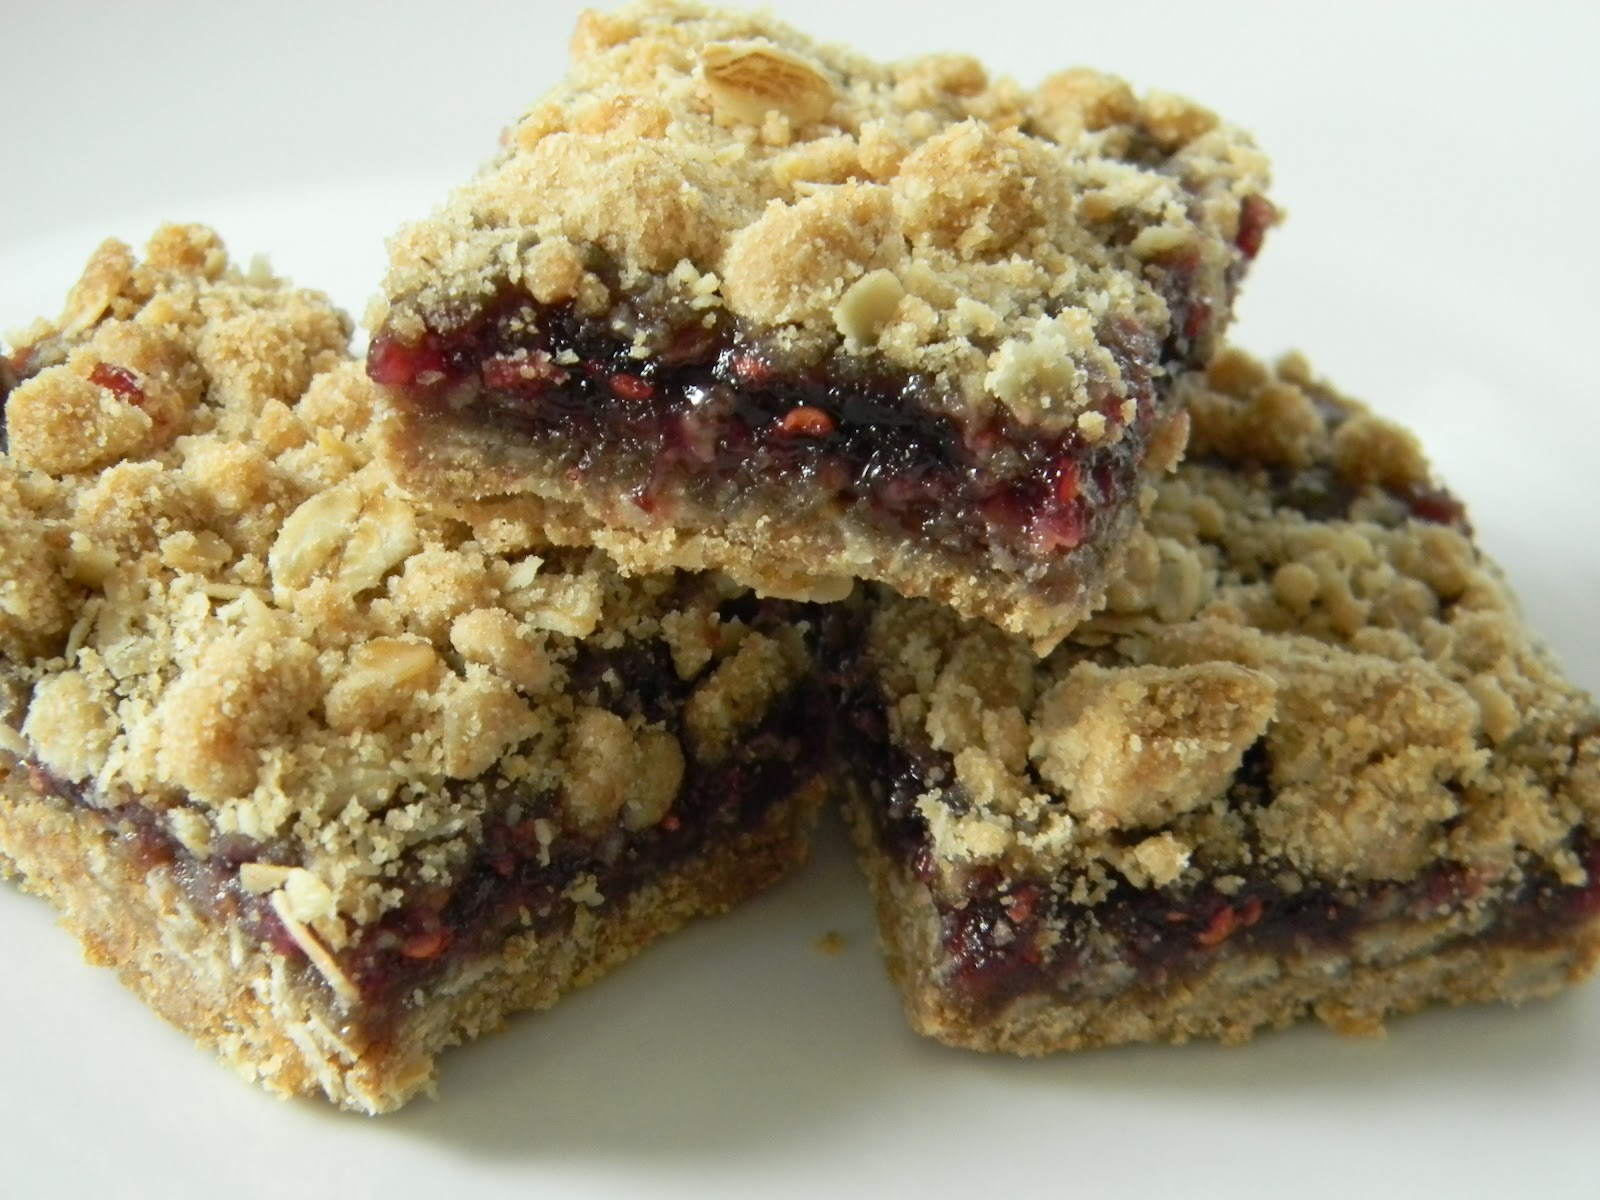 Recipes from the Pickle Boat: Raspberry Oatmeal Bars